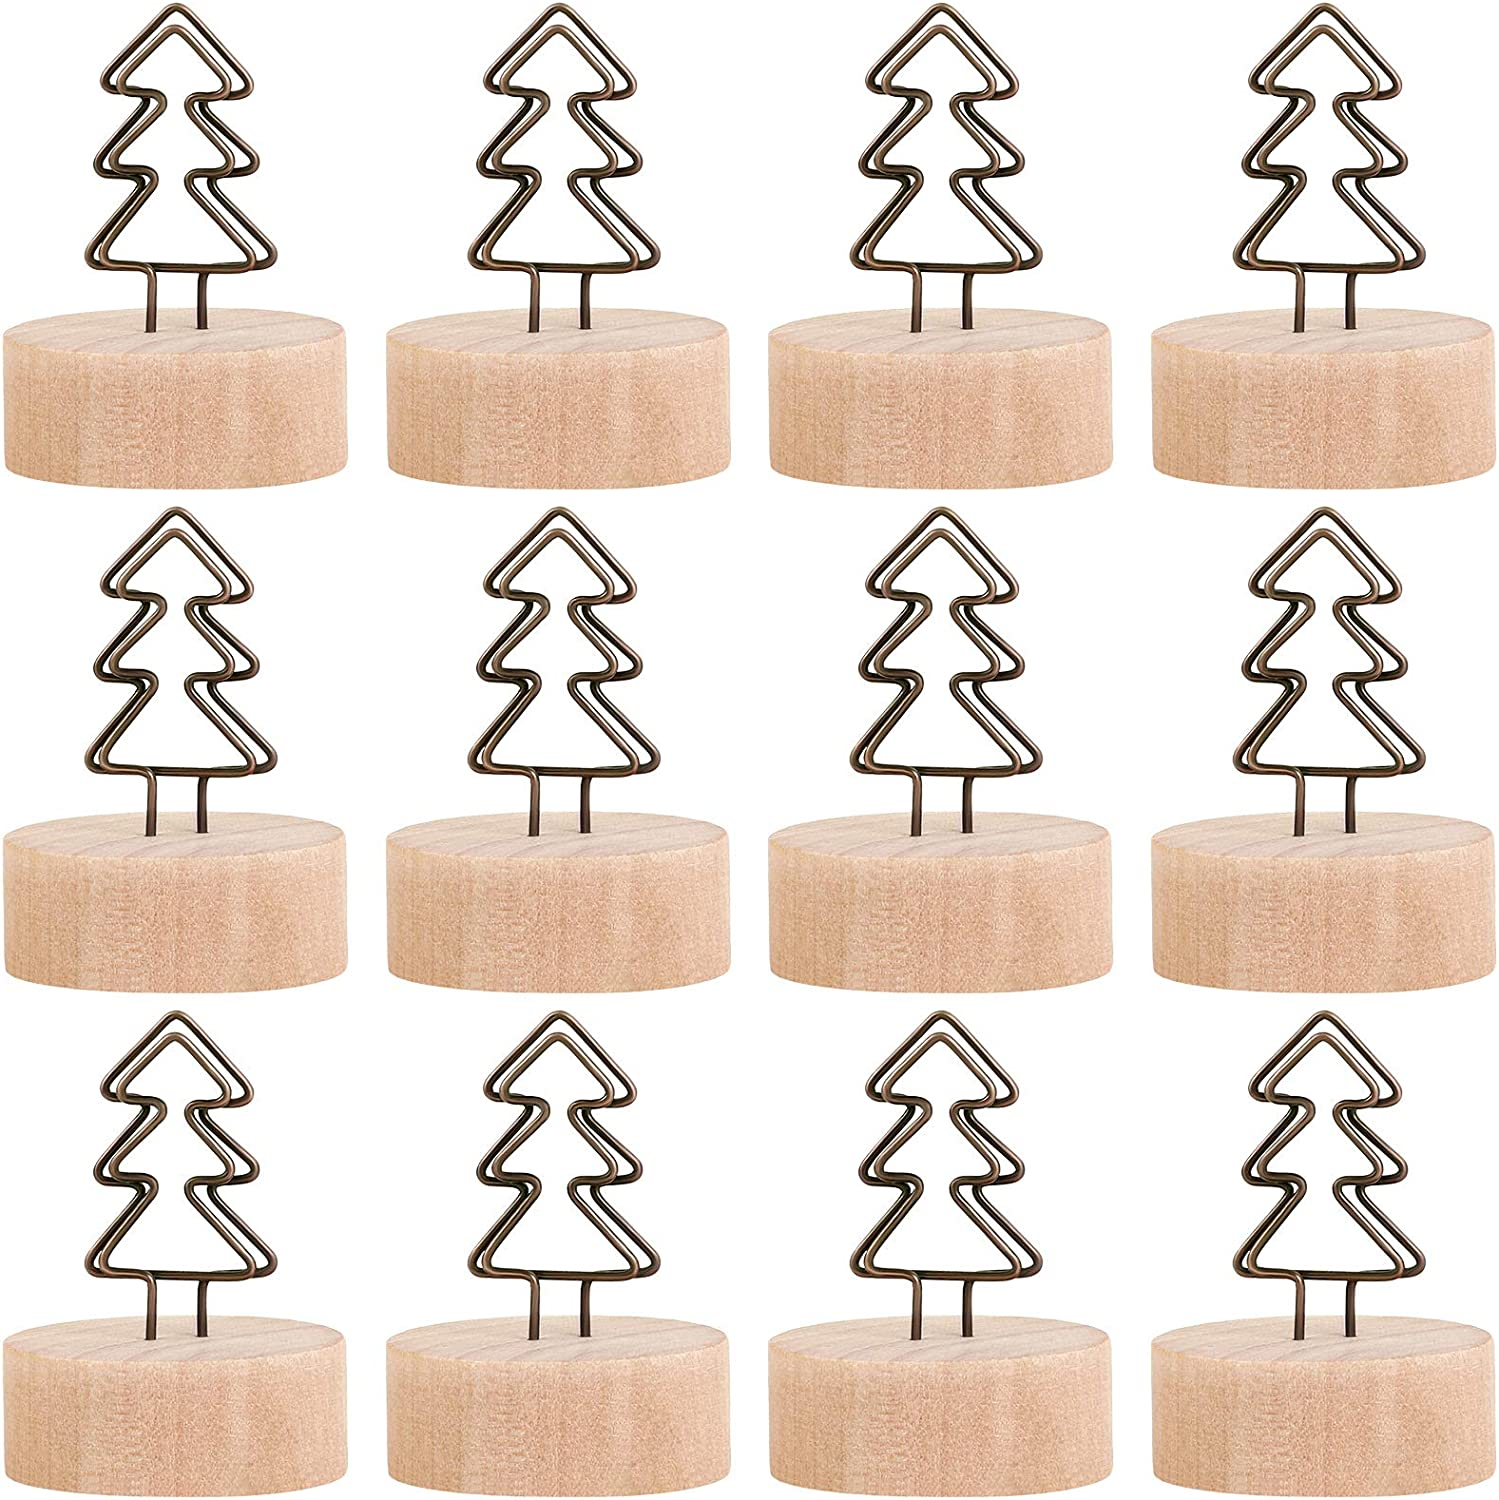 ADXCO 12 Pack Christmas Party Decoration Card Holders Wooden Base Card Holders Rustic Iron Wire Picture Picks Clip Holder Picture Memo Note Photo Clip for Wedding Office Christmas Table Decorations: Kitchen & Dining